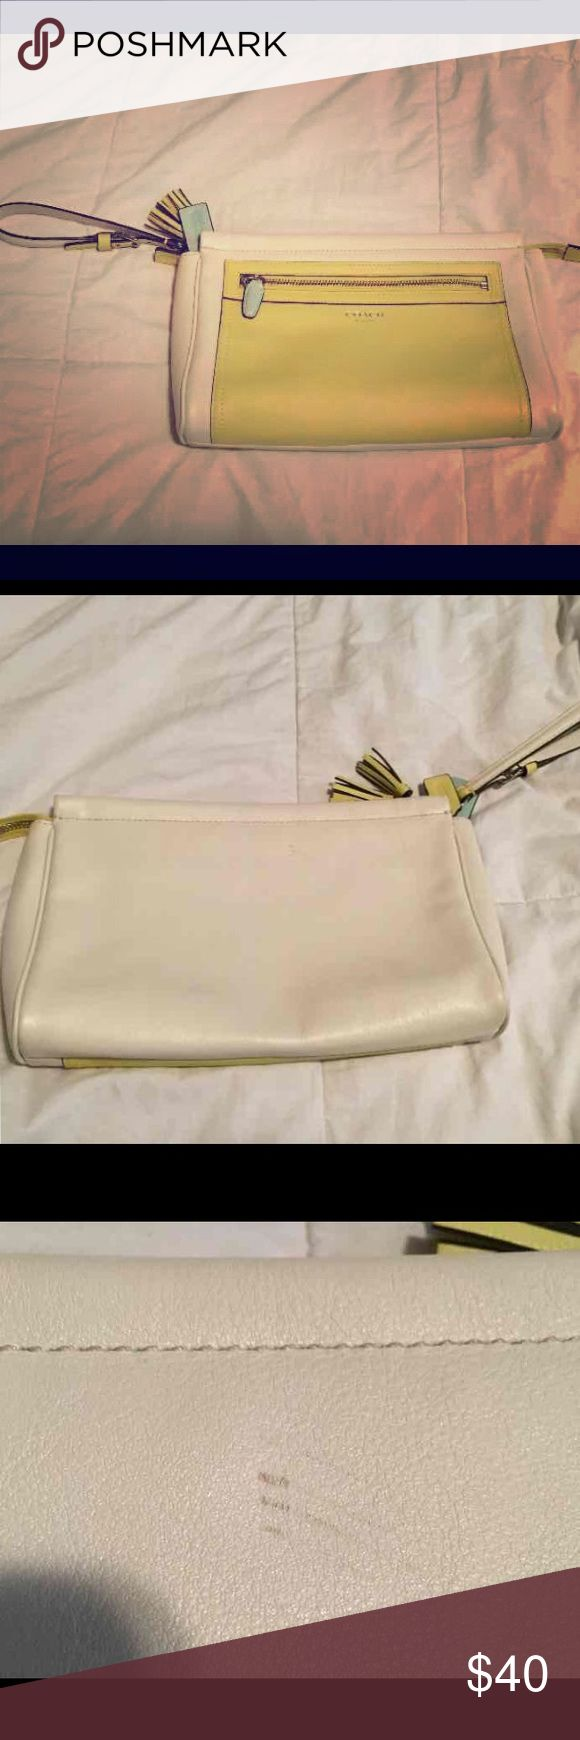 Coach legacy clutch Leather Coach legacy tassel clutch great condition ... purchased from another posh never used it ... never been out of my house only mark is a small spot on the back (see pic) Coach Bags Clutches & Wristlets